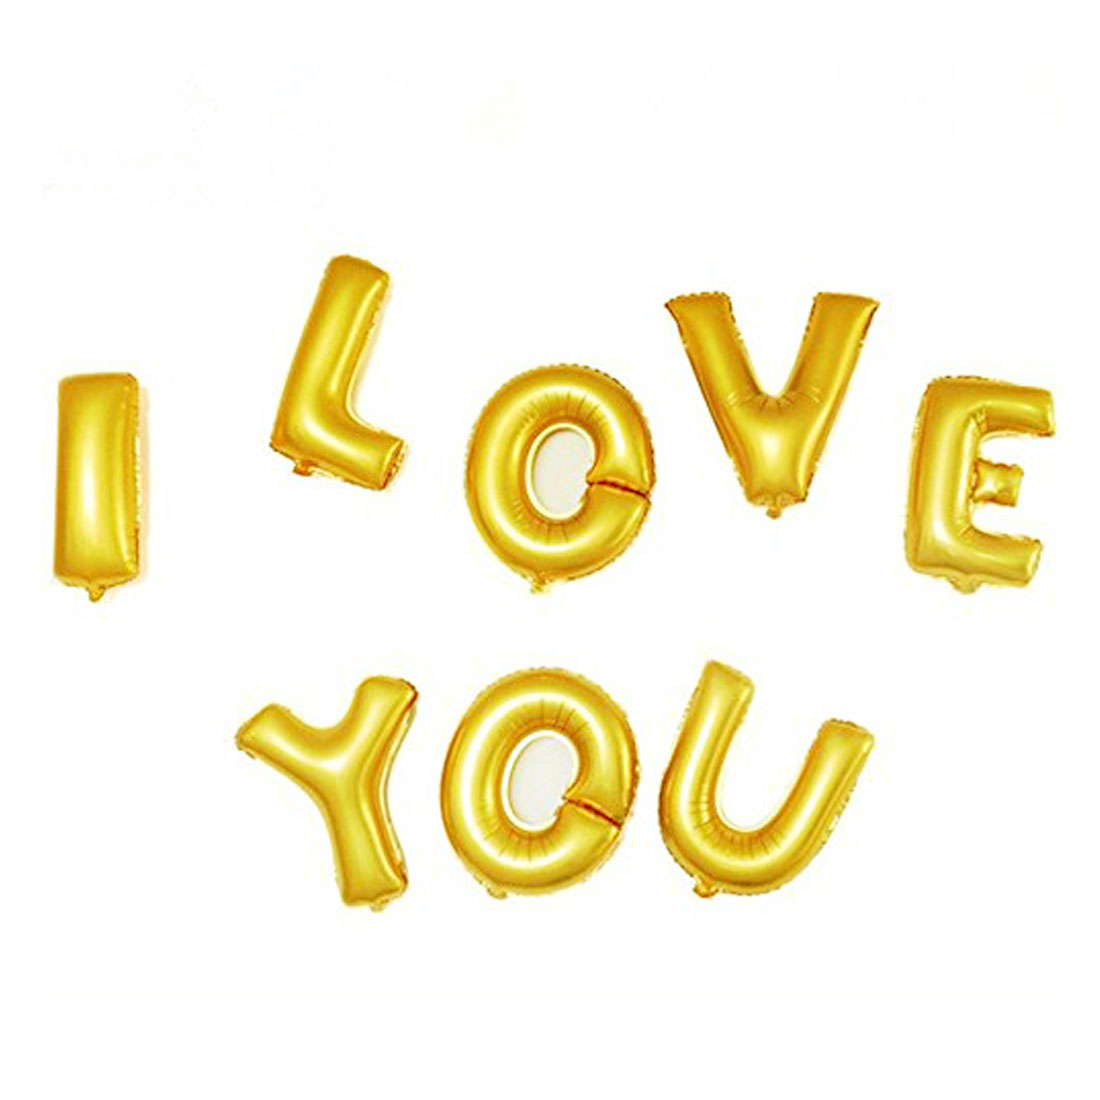 Foil I LOVE YOU Balloon Wedding Party Celebration Decor Gold Tone 8 in 1 - image 4 of 4